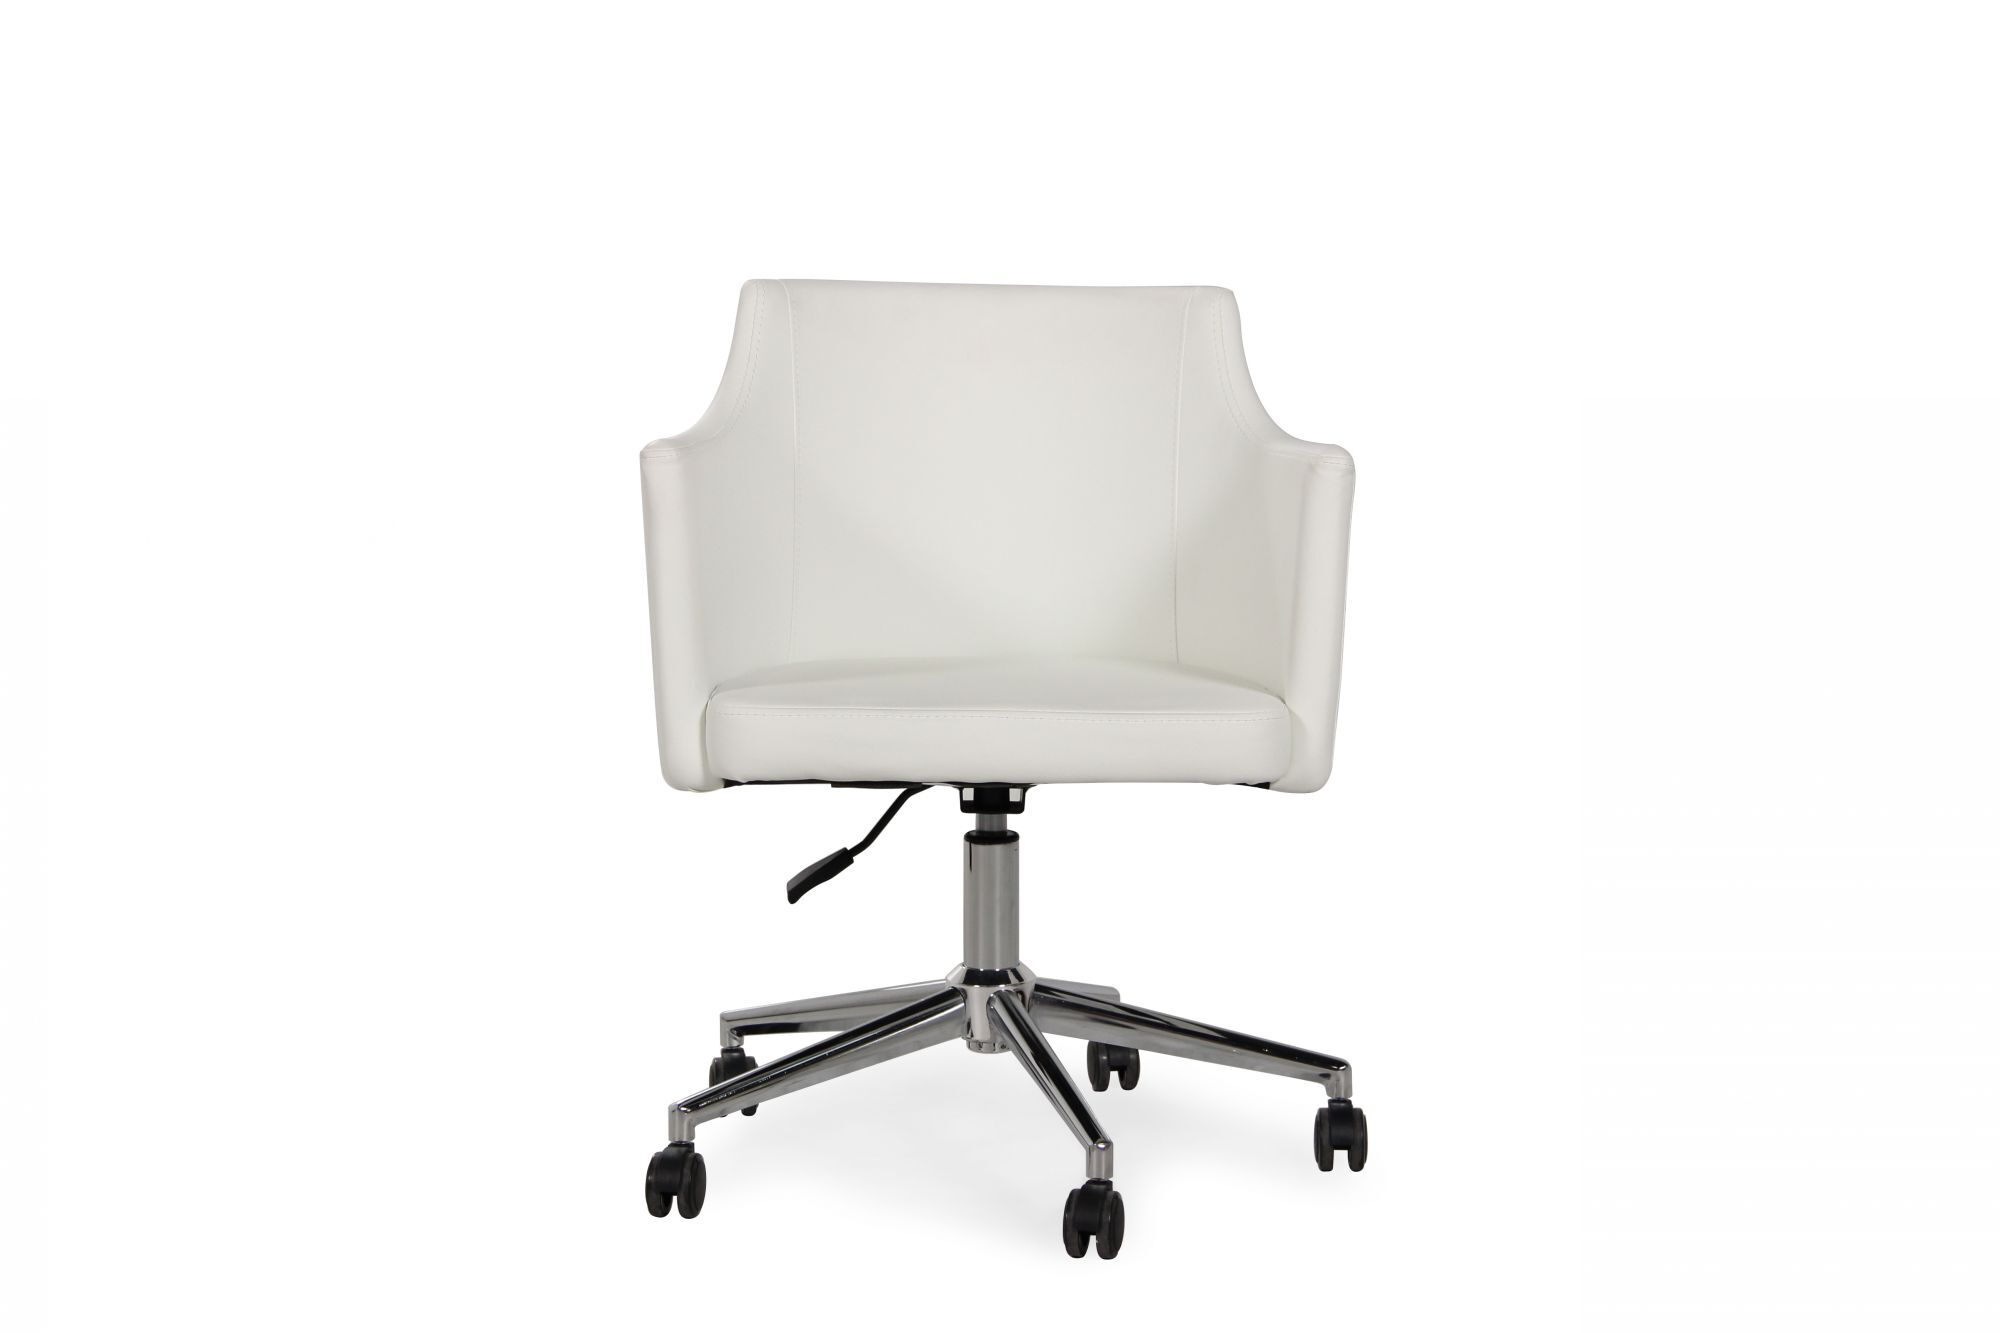 Cool Home Office Chairs Emily Henderson Leather Swivel Chairnbsp Arcticoceanforever Home Office Chairs Desk Chairs Mathis Brothers